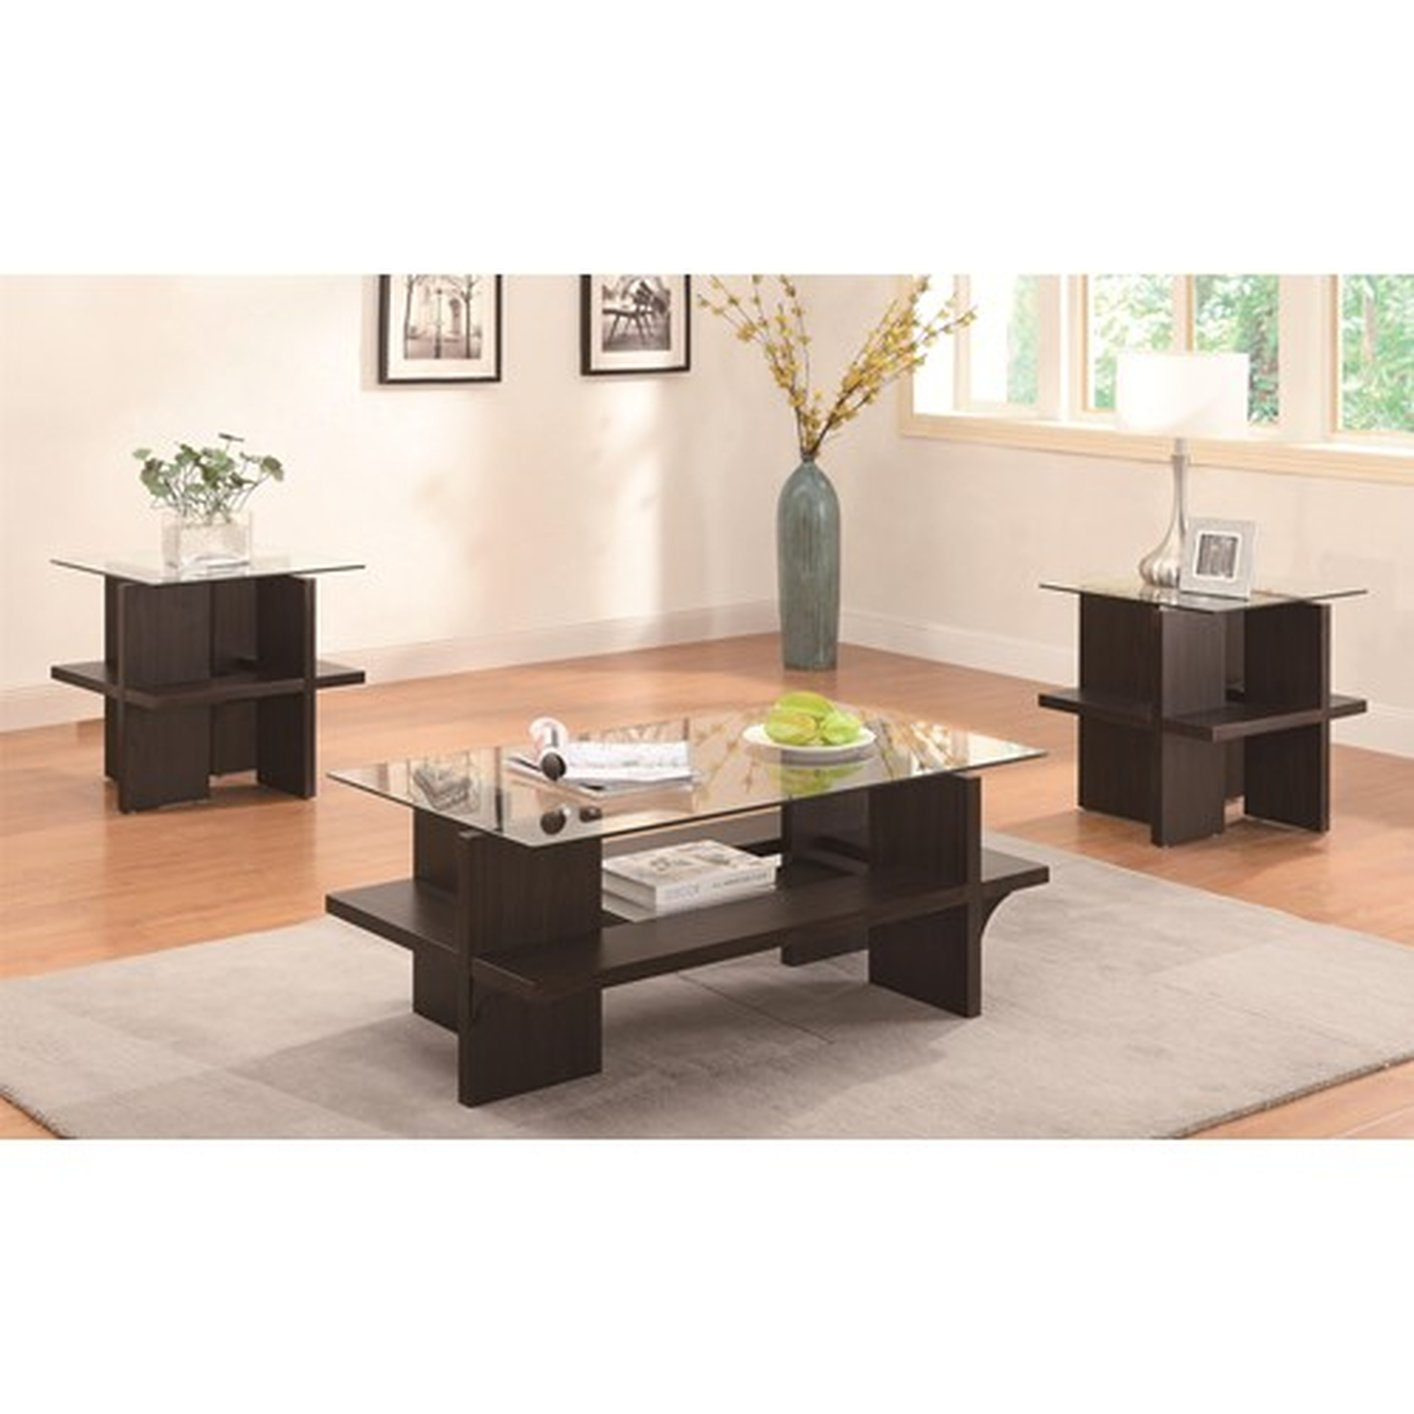 Enright Brown Glass Coffee Table Set Steal A Sofa Furniture Outlet Los Angeles Ca